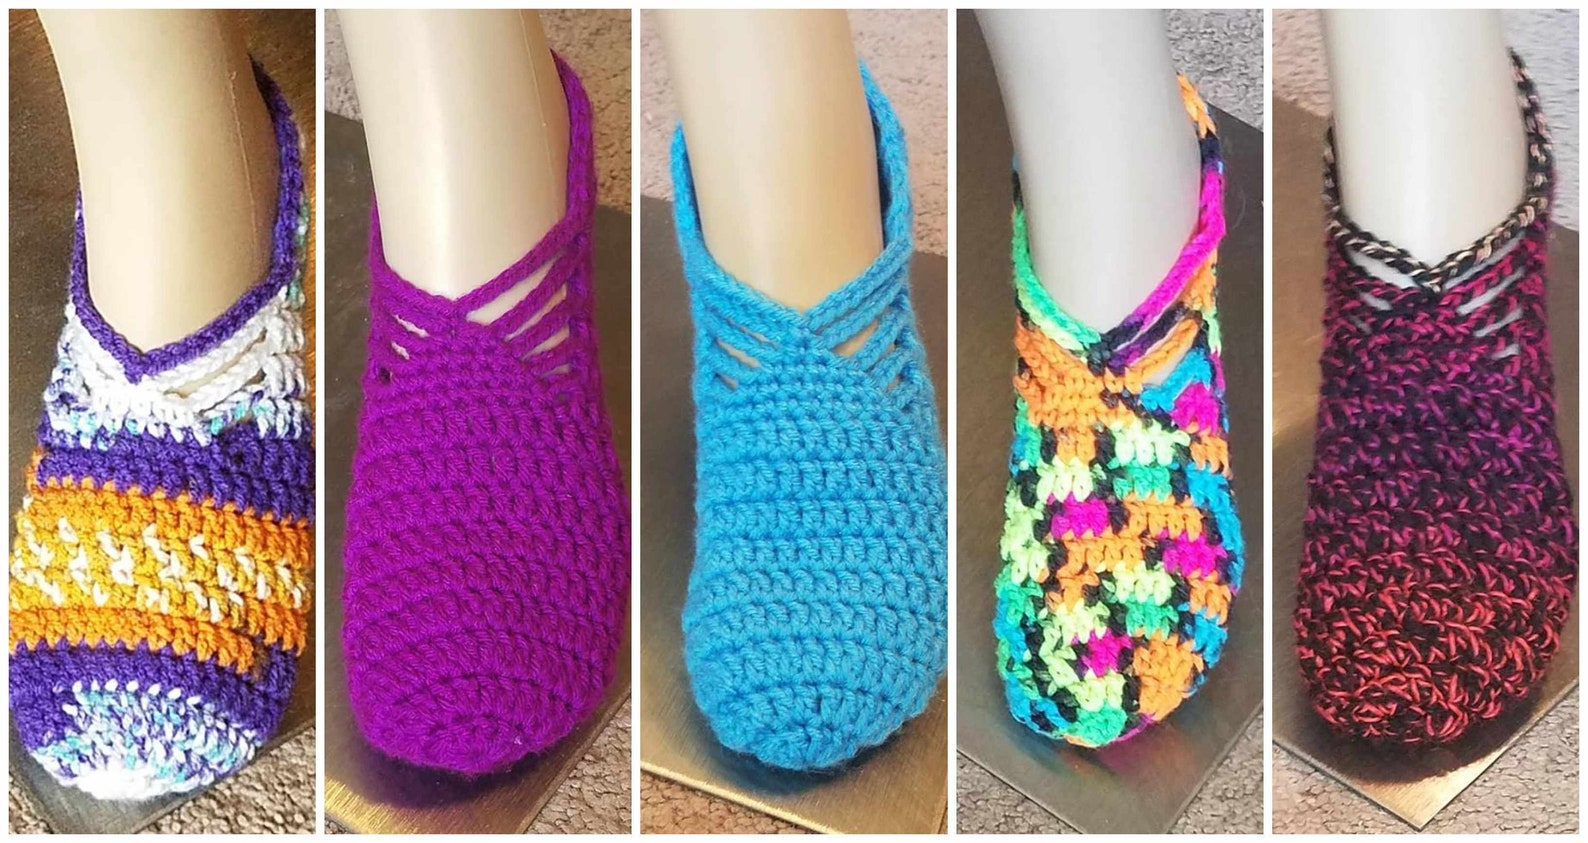 soft cozy women's slippers ballet slippers boho slippers lounge slippers ladies slippers handmade slippers crochet slippers